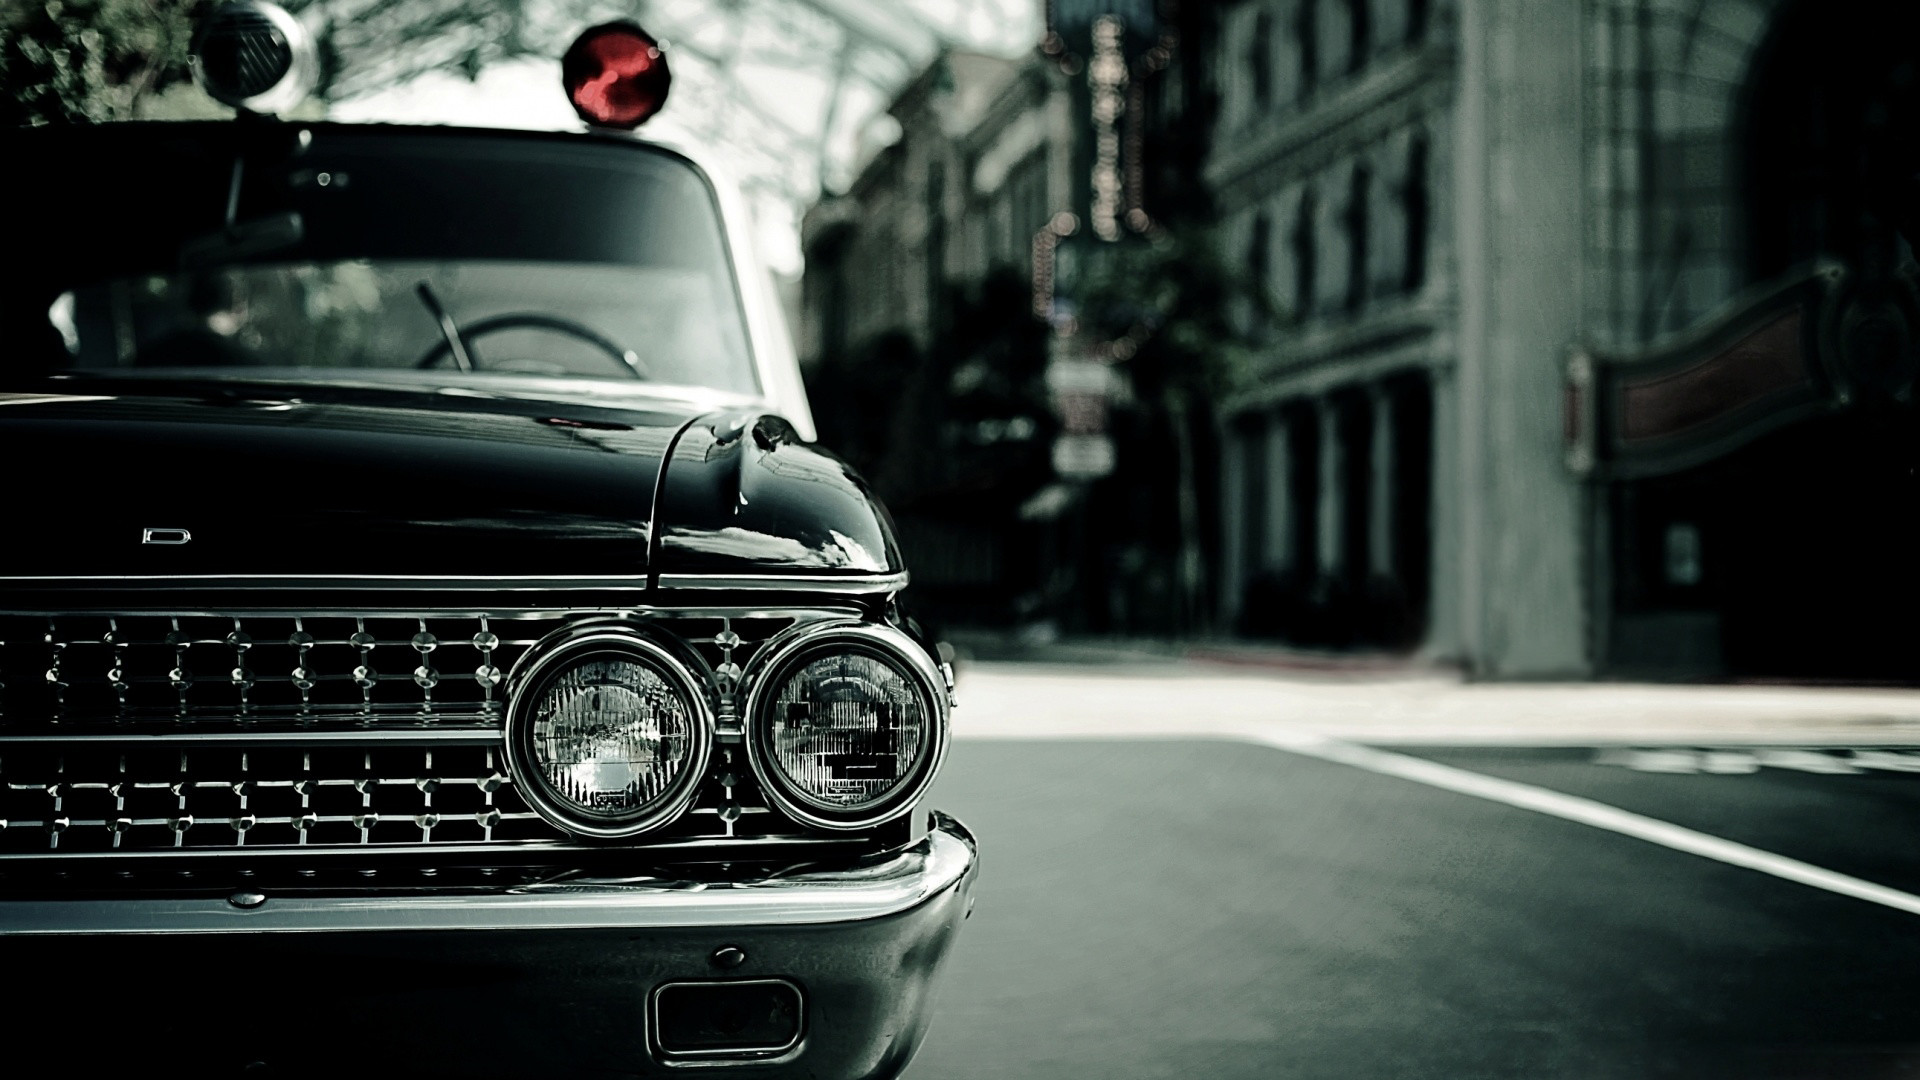 1920x1080 The-Best-Vintage-Car-Wallpapers-13 (Roundup: The Best